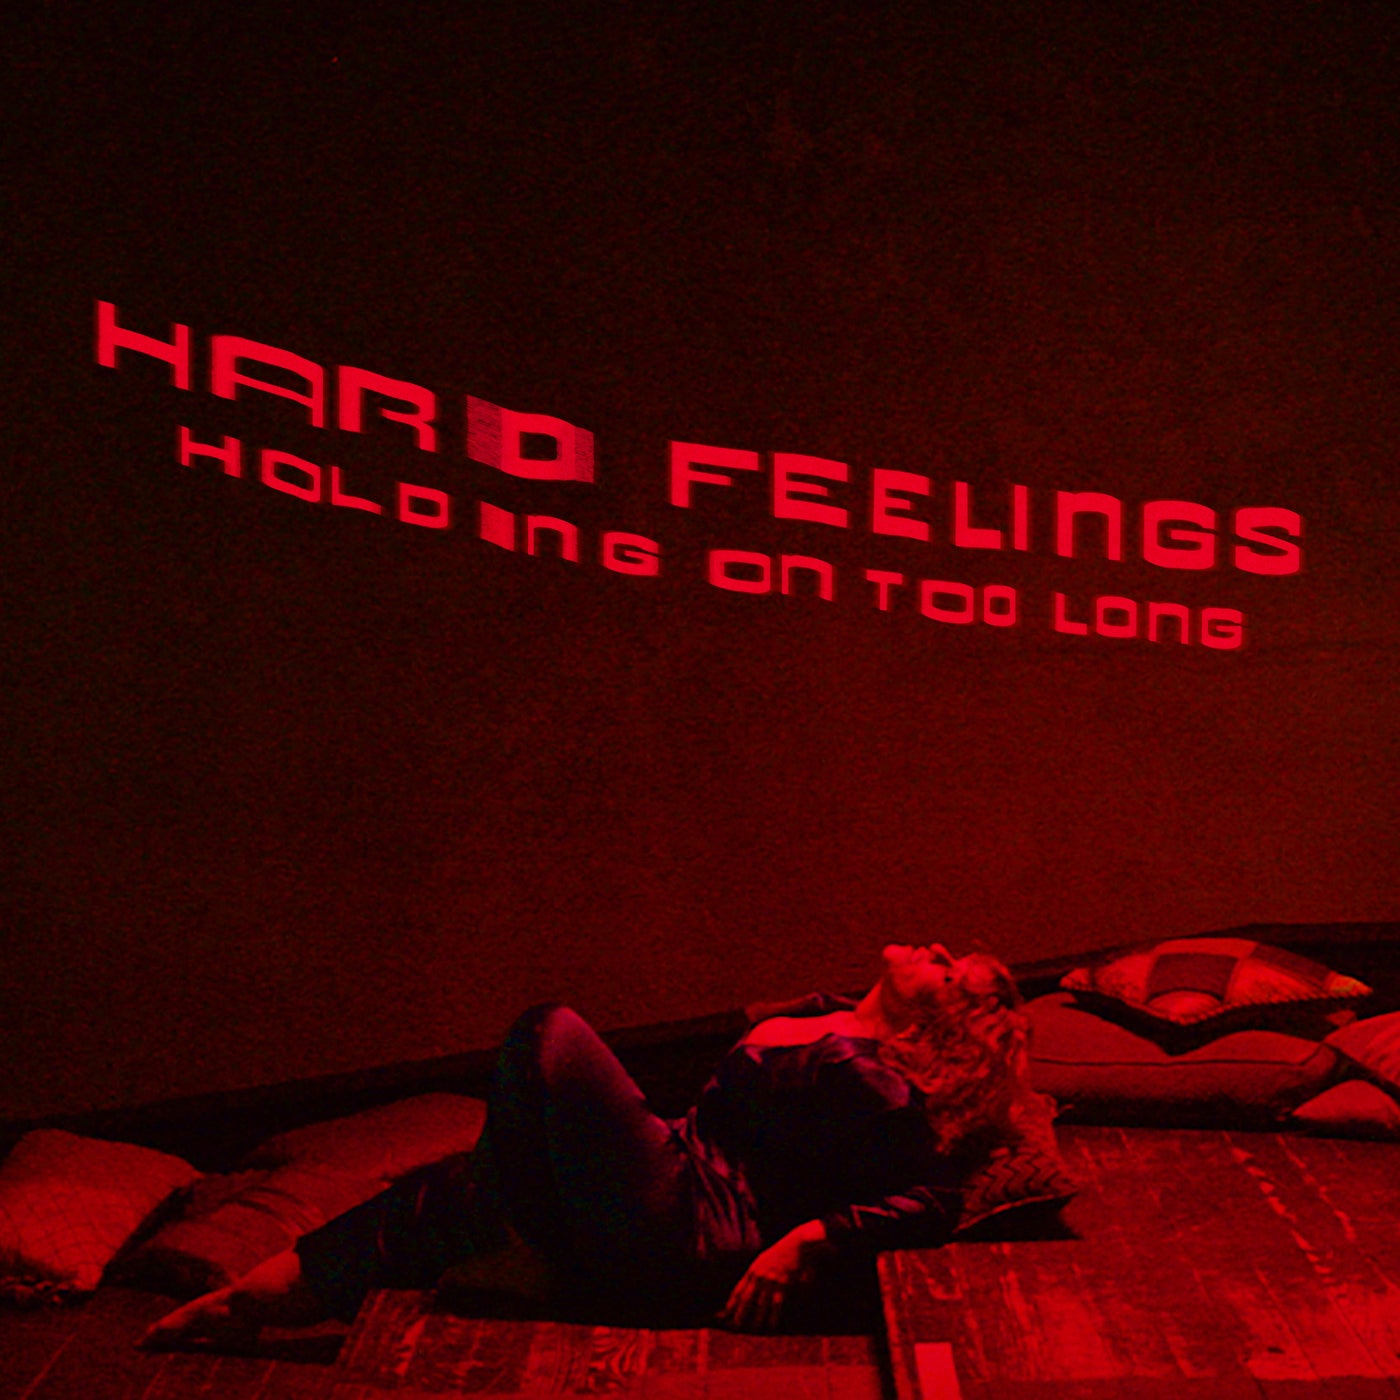 Holding On Too Long (Original Mix)